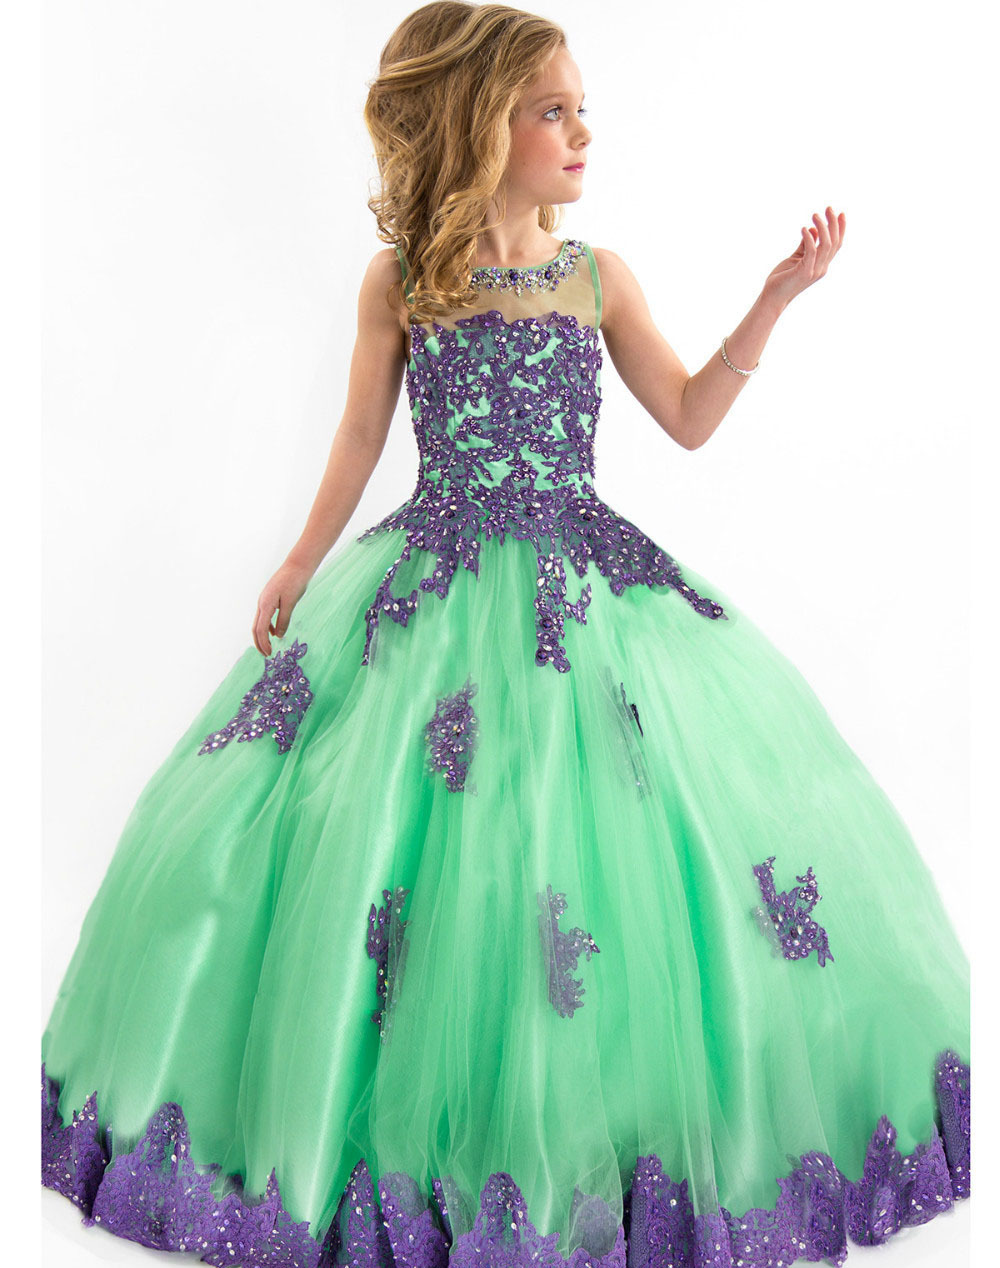 SUN536 Mint Green New 2014 Communion Sleeveless Keyhole Back Ball Gown Puffy Girls Pagent Dresses Free Shipping With Embroidery